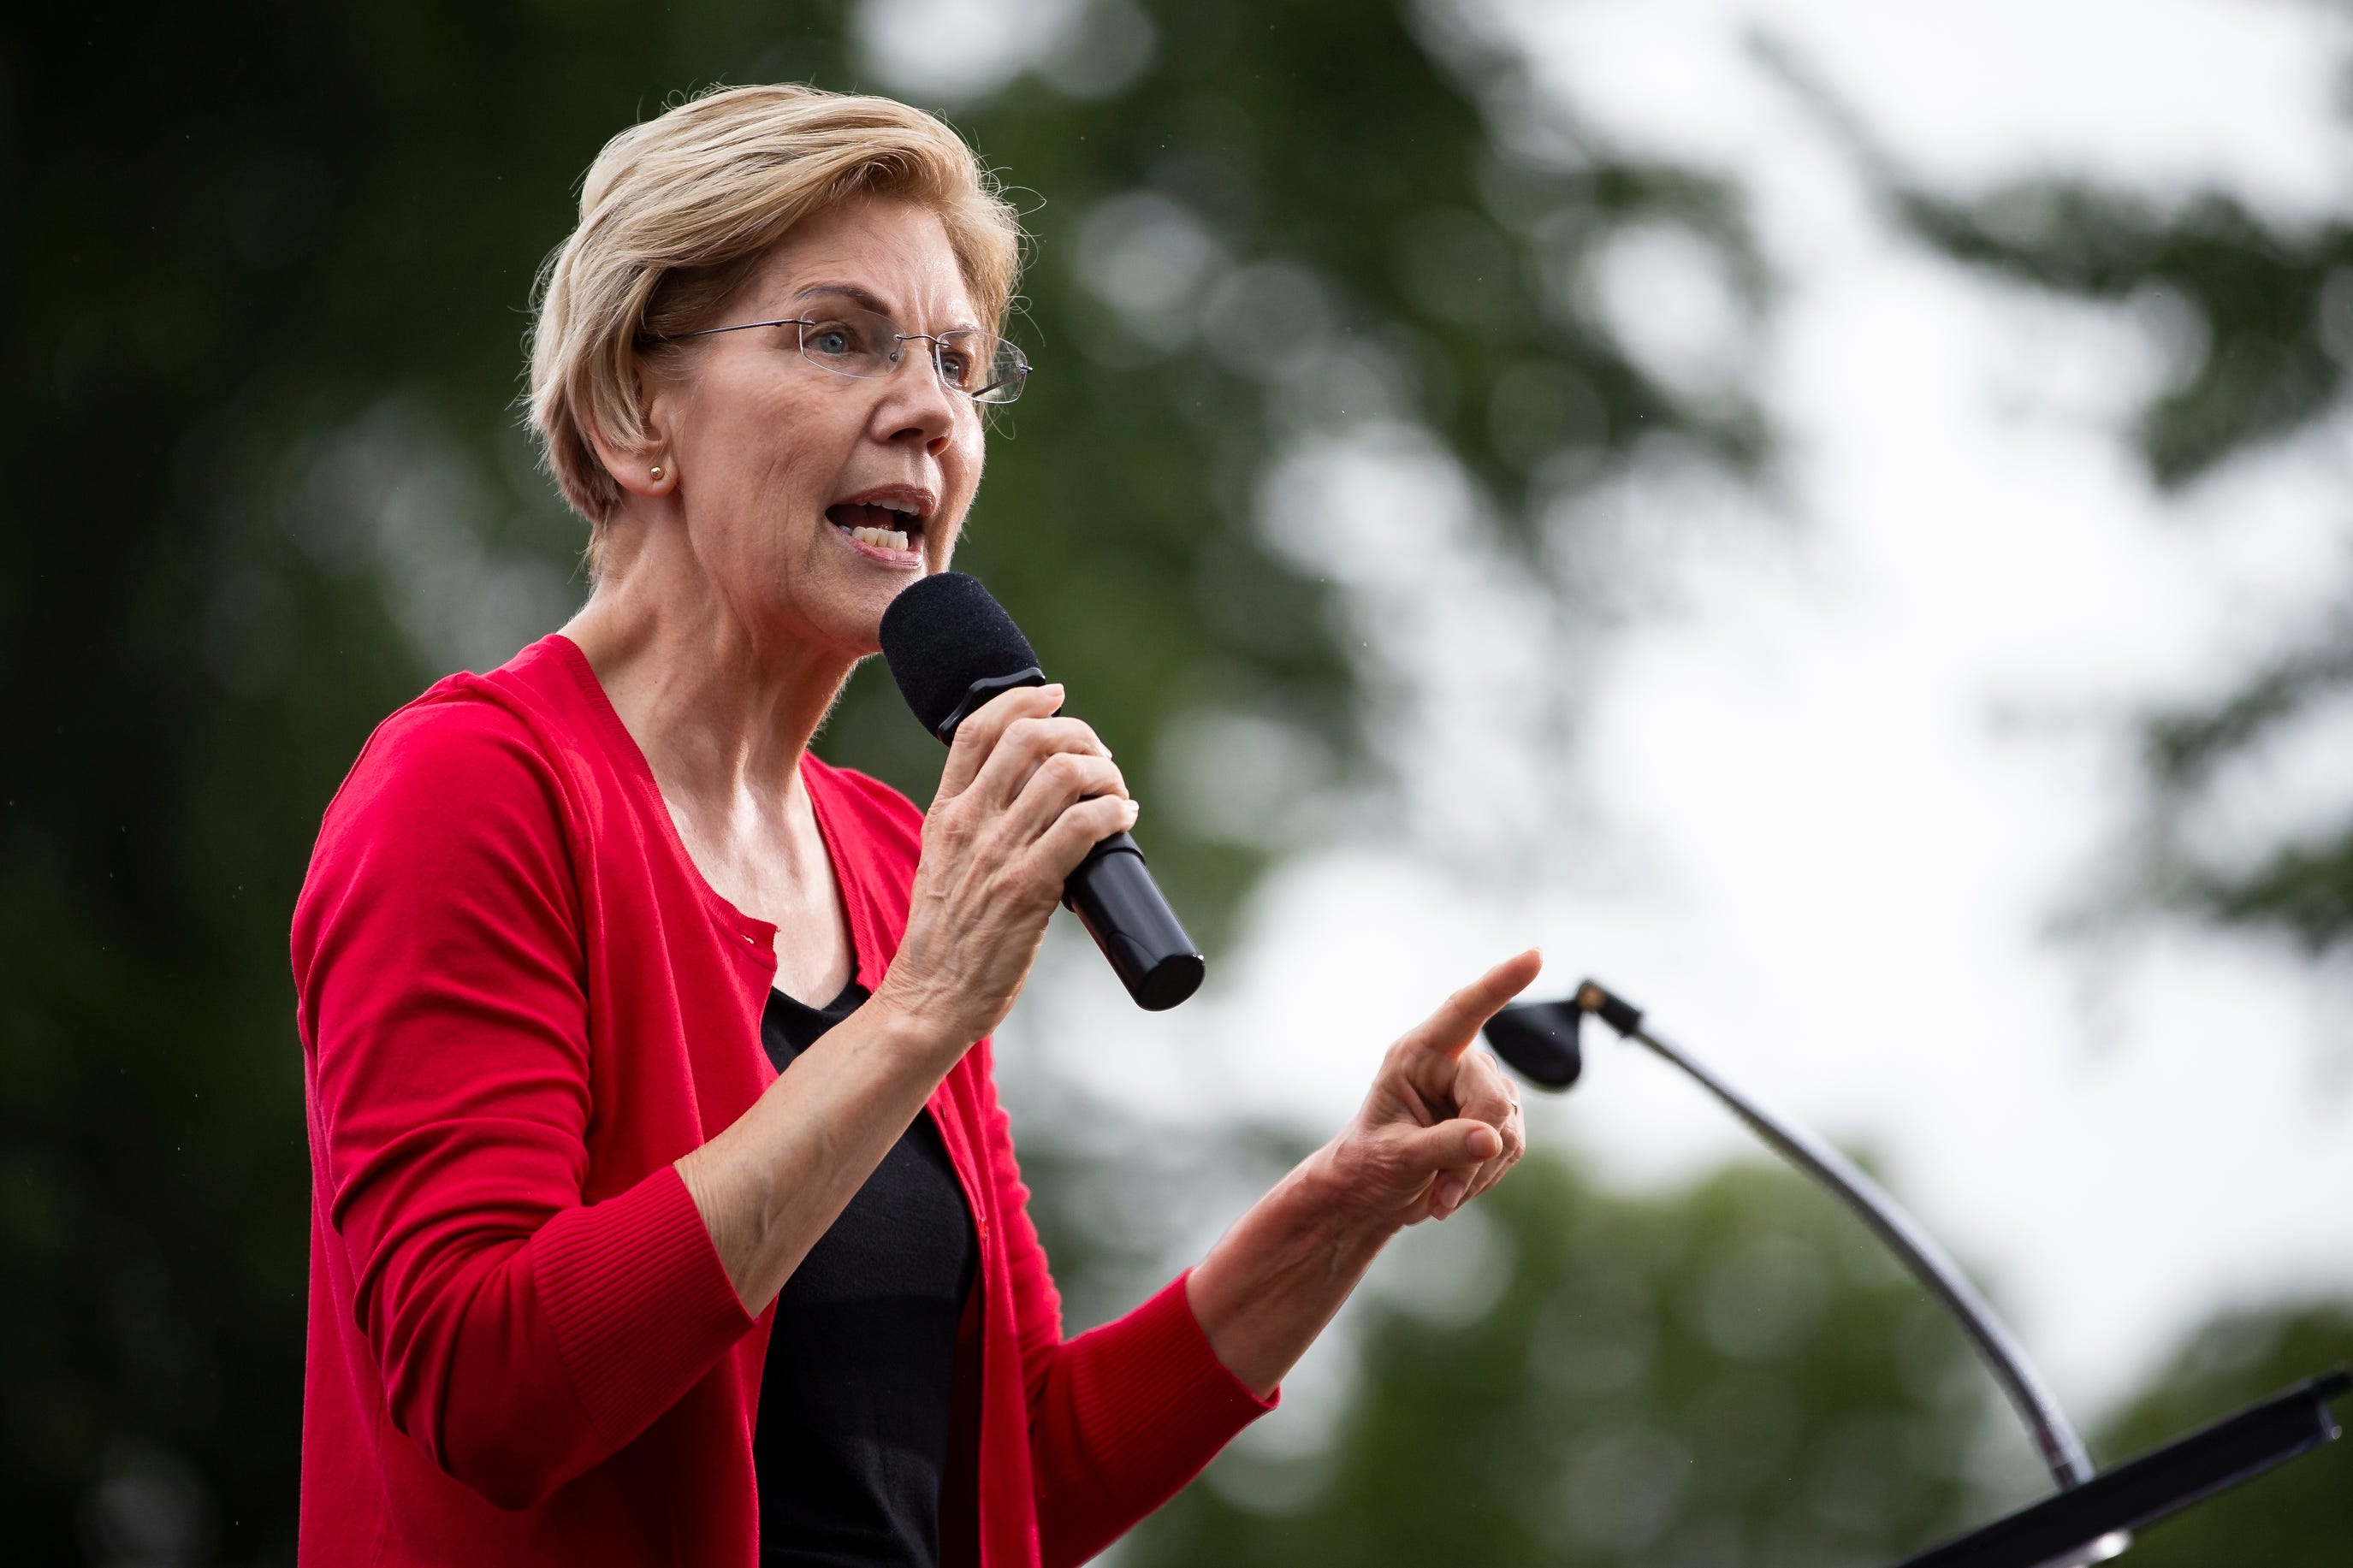 Following debate criticism, Elizabeth Warren will outline how to pay for 'Medicare for All' plan